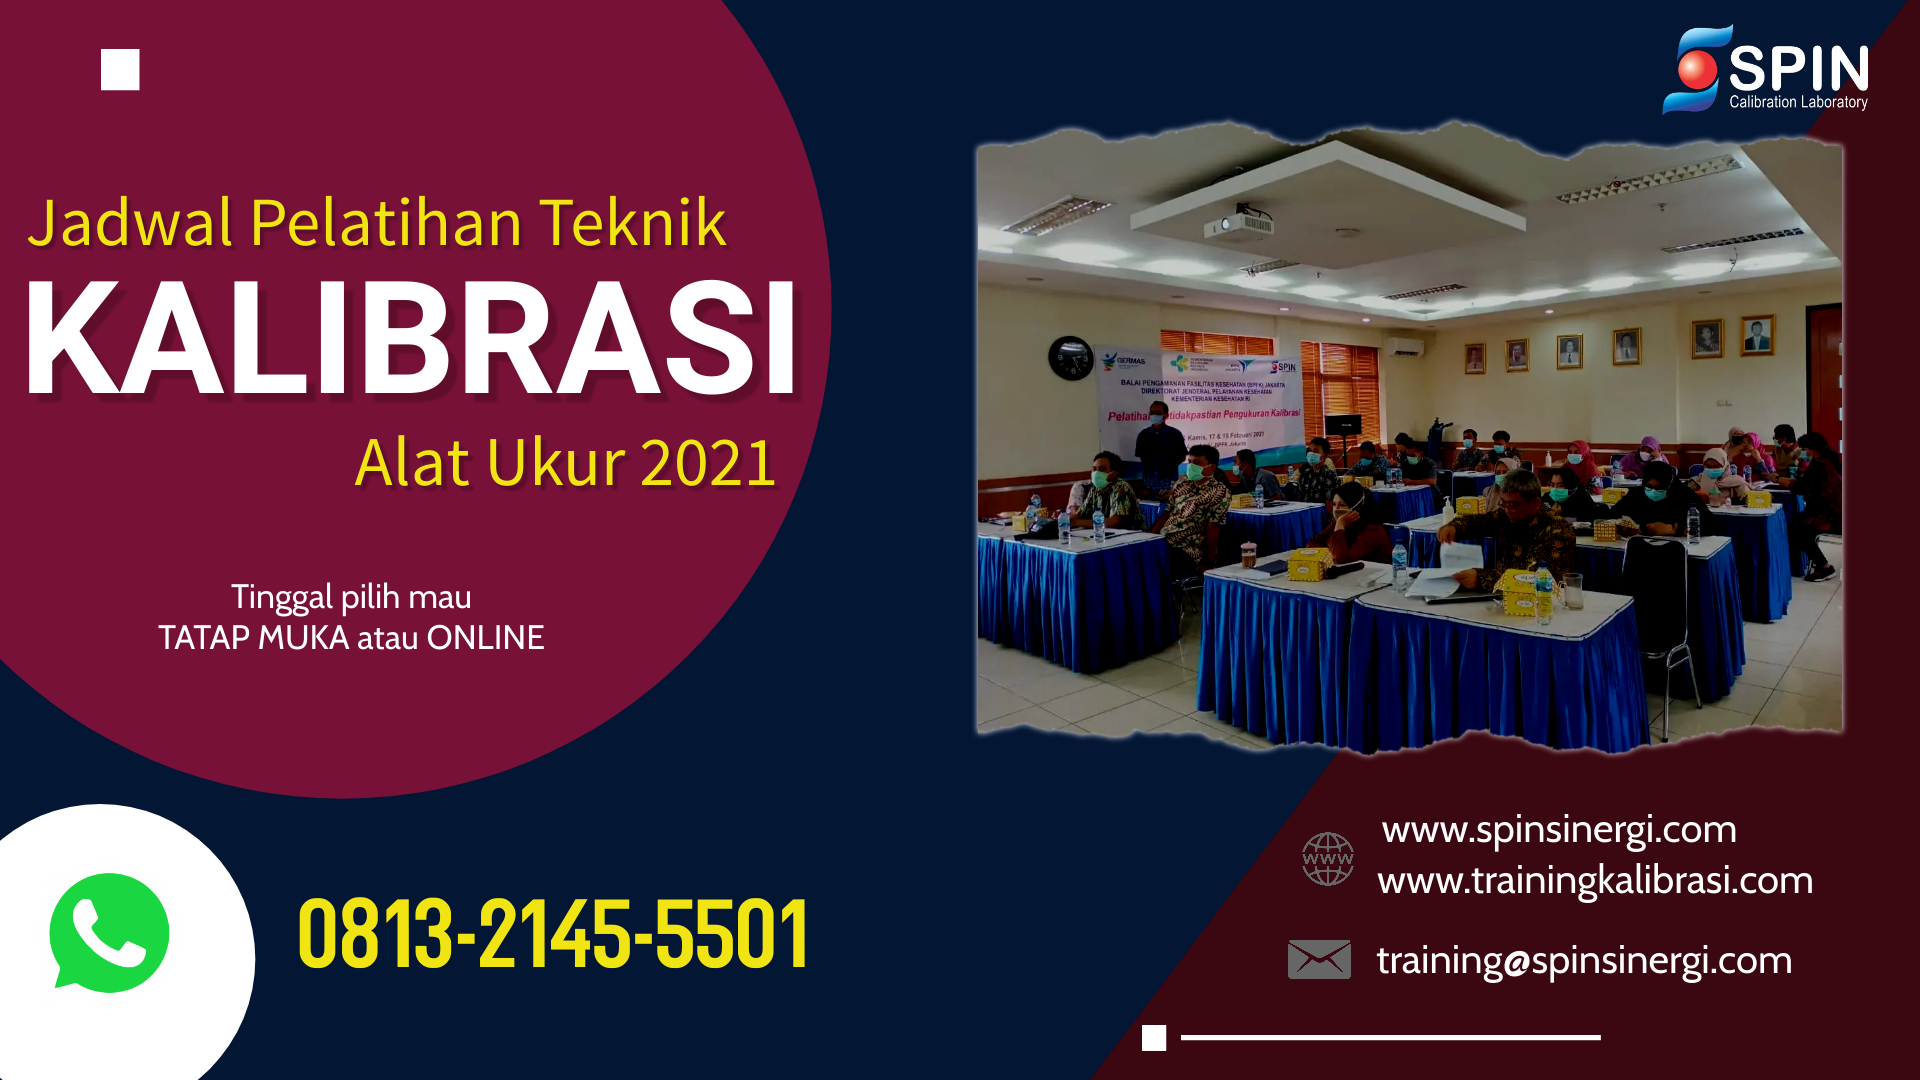 Jadwal Training Kalibrasi 2021